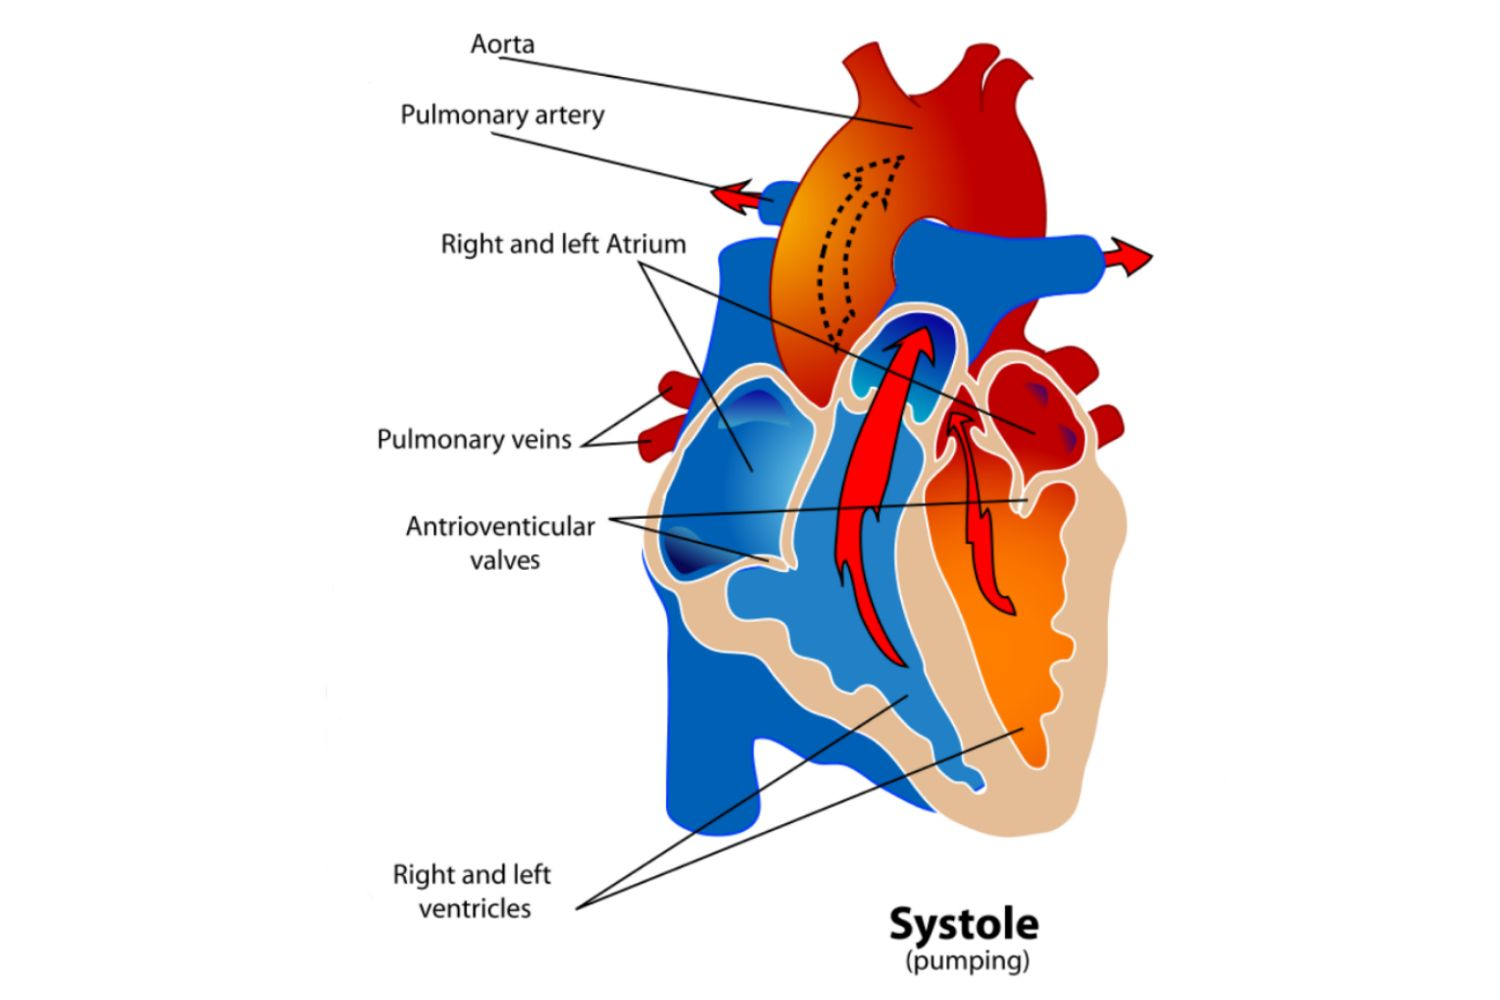 hight resolution of diagram of the heart during the systole phase of the cardiac cycle